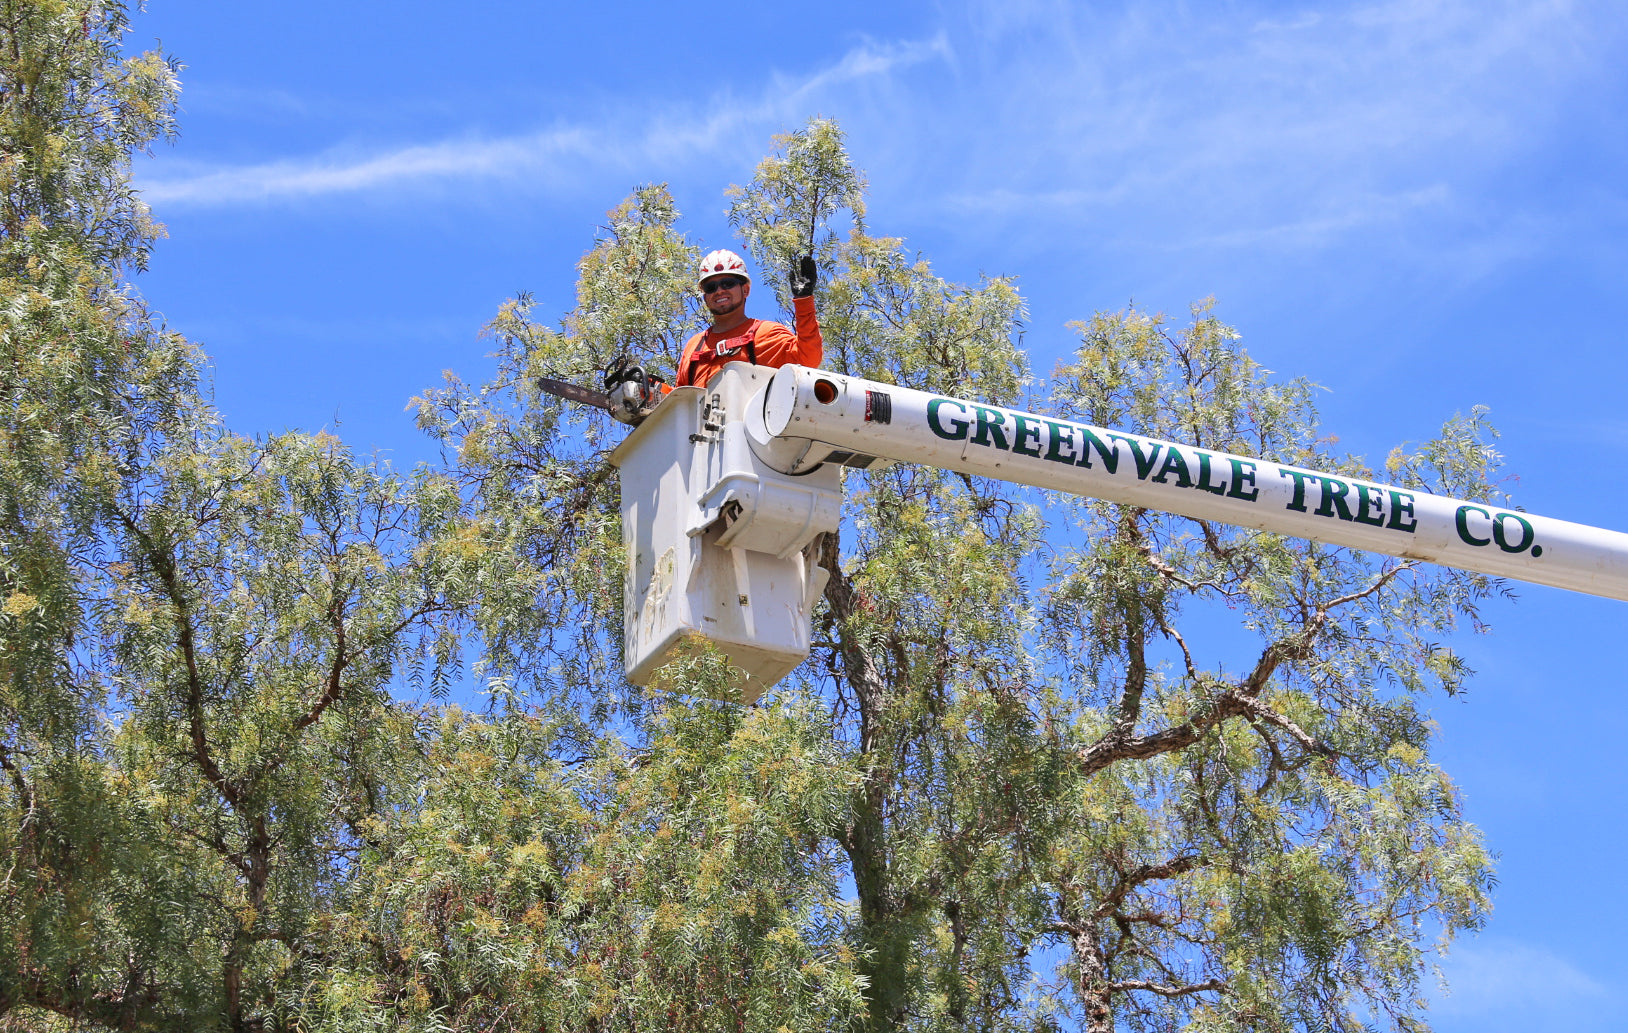 greenvale tree company arborist in cherry picker